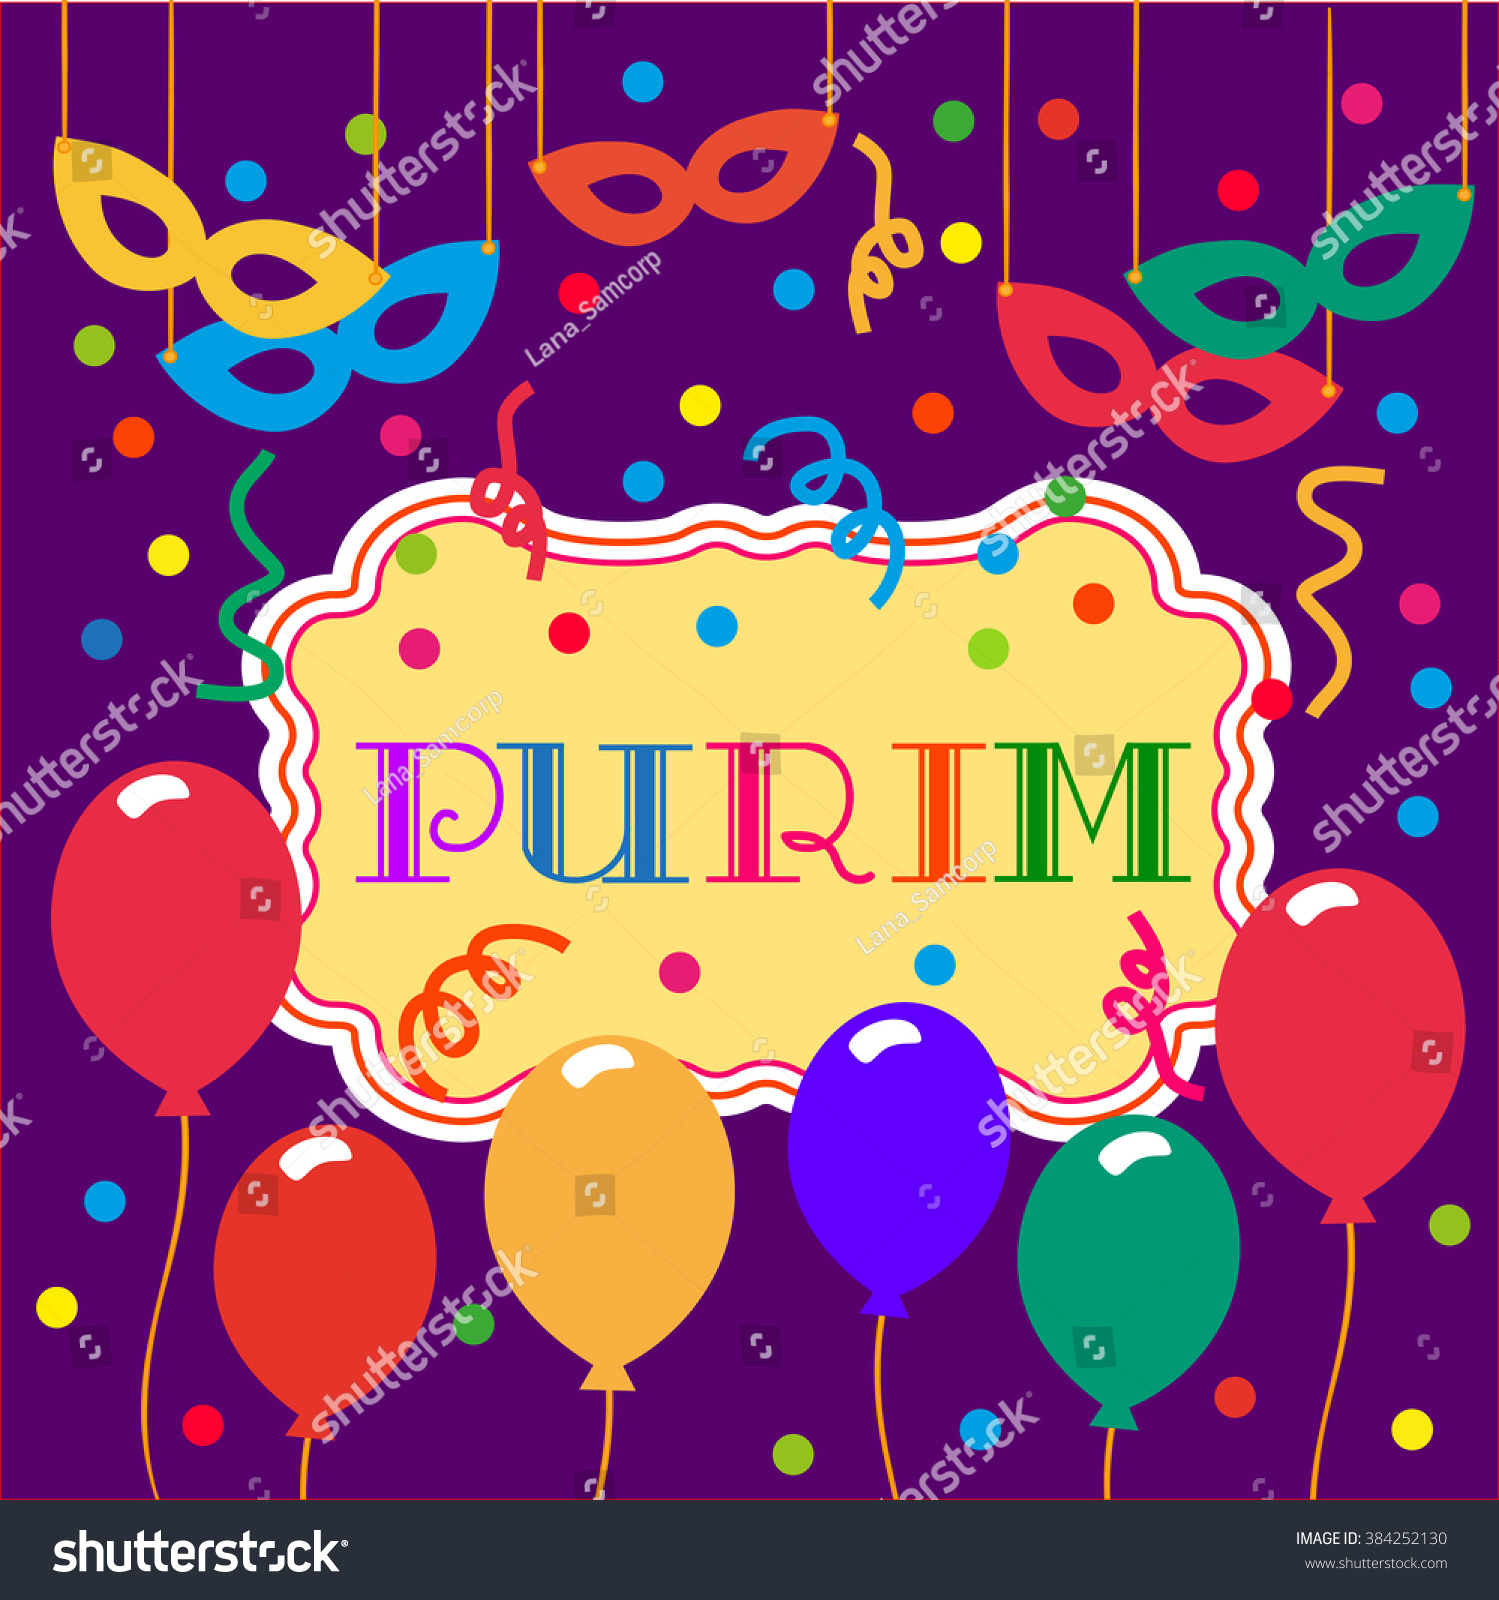 concept kids masquerade happy purim holiday stock vector  concept of kids masquerade happy purim holiday carnival poster template background purim festival